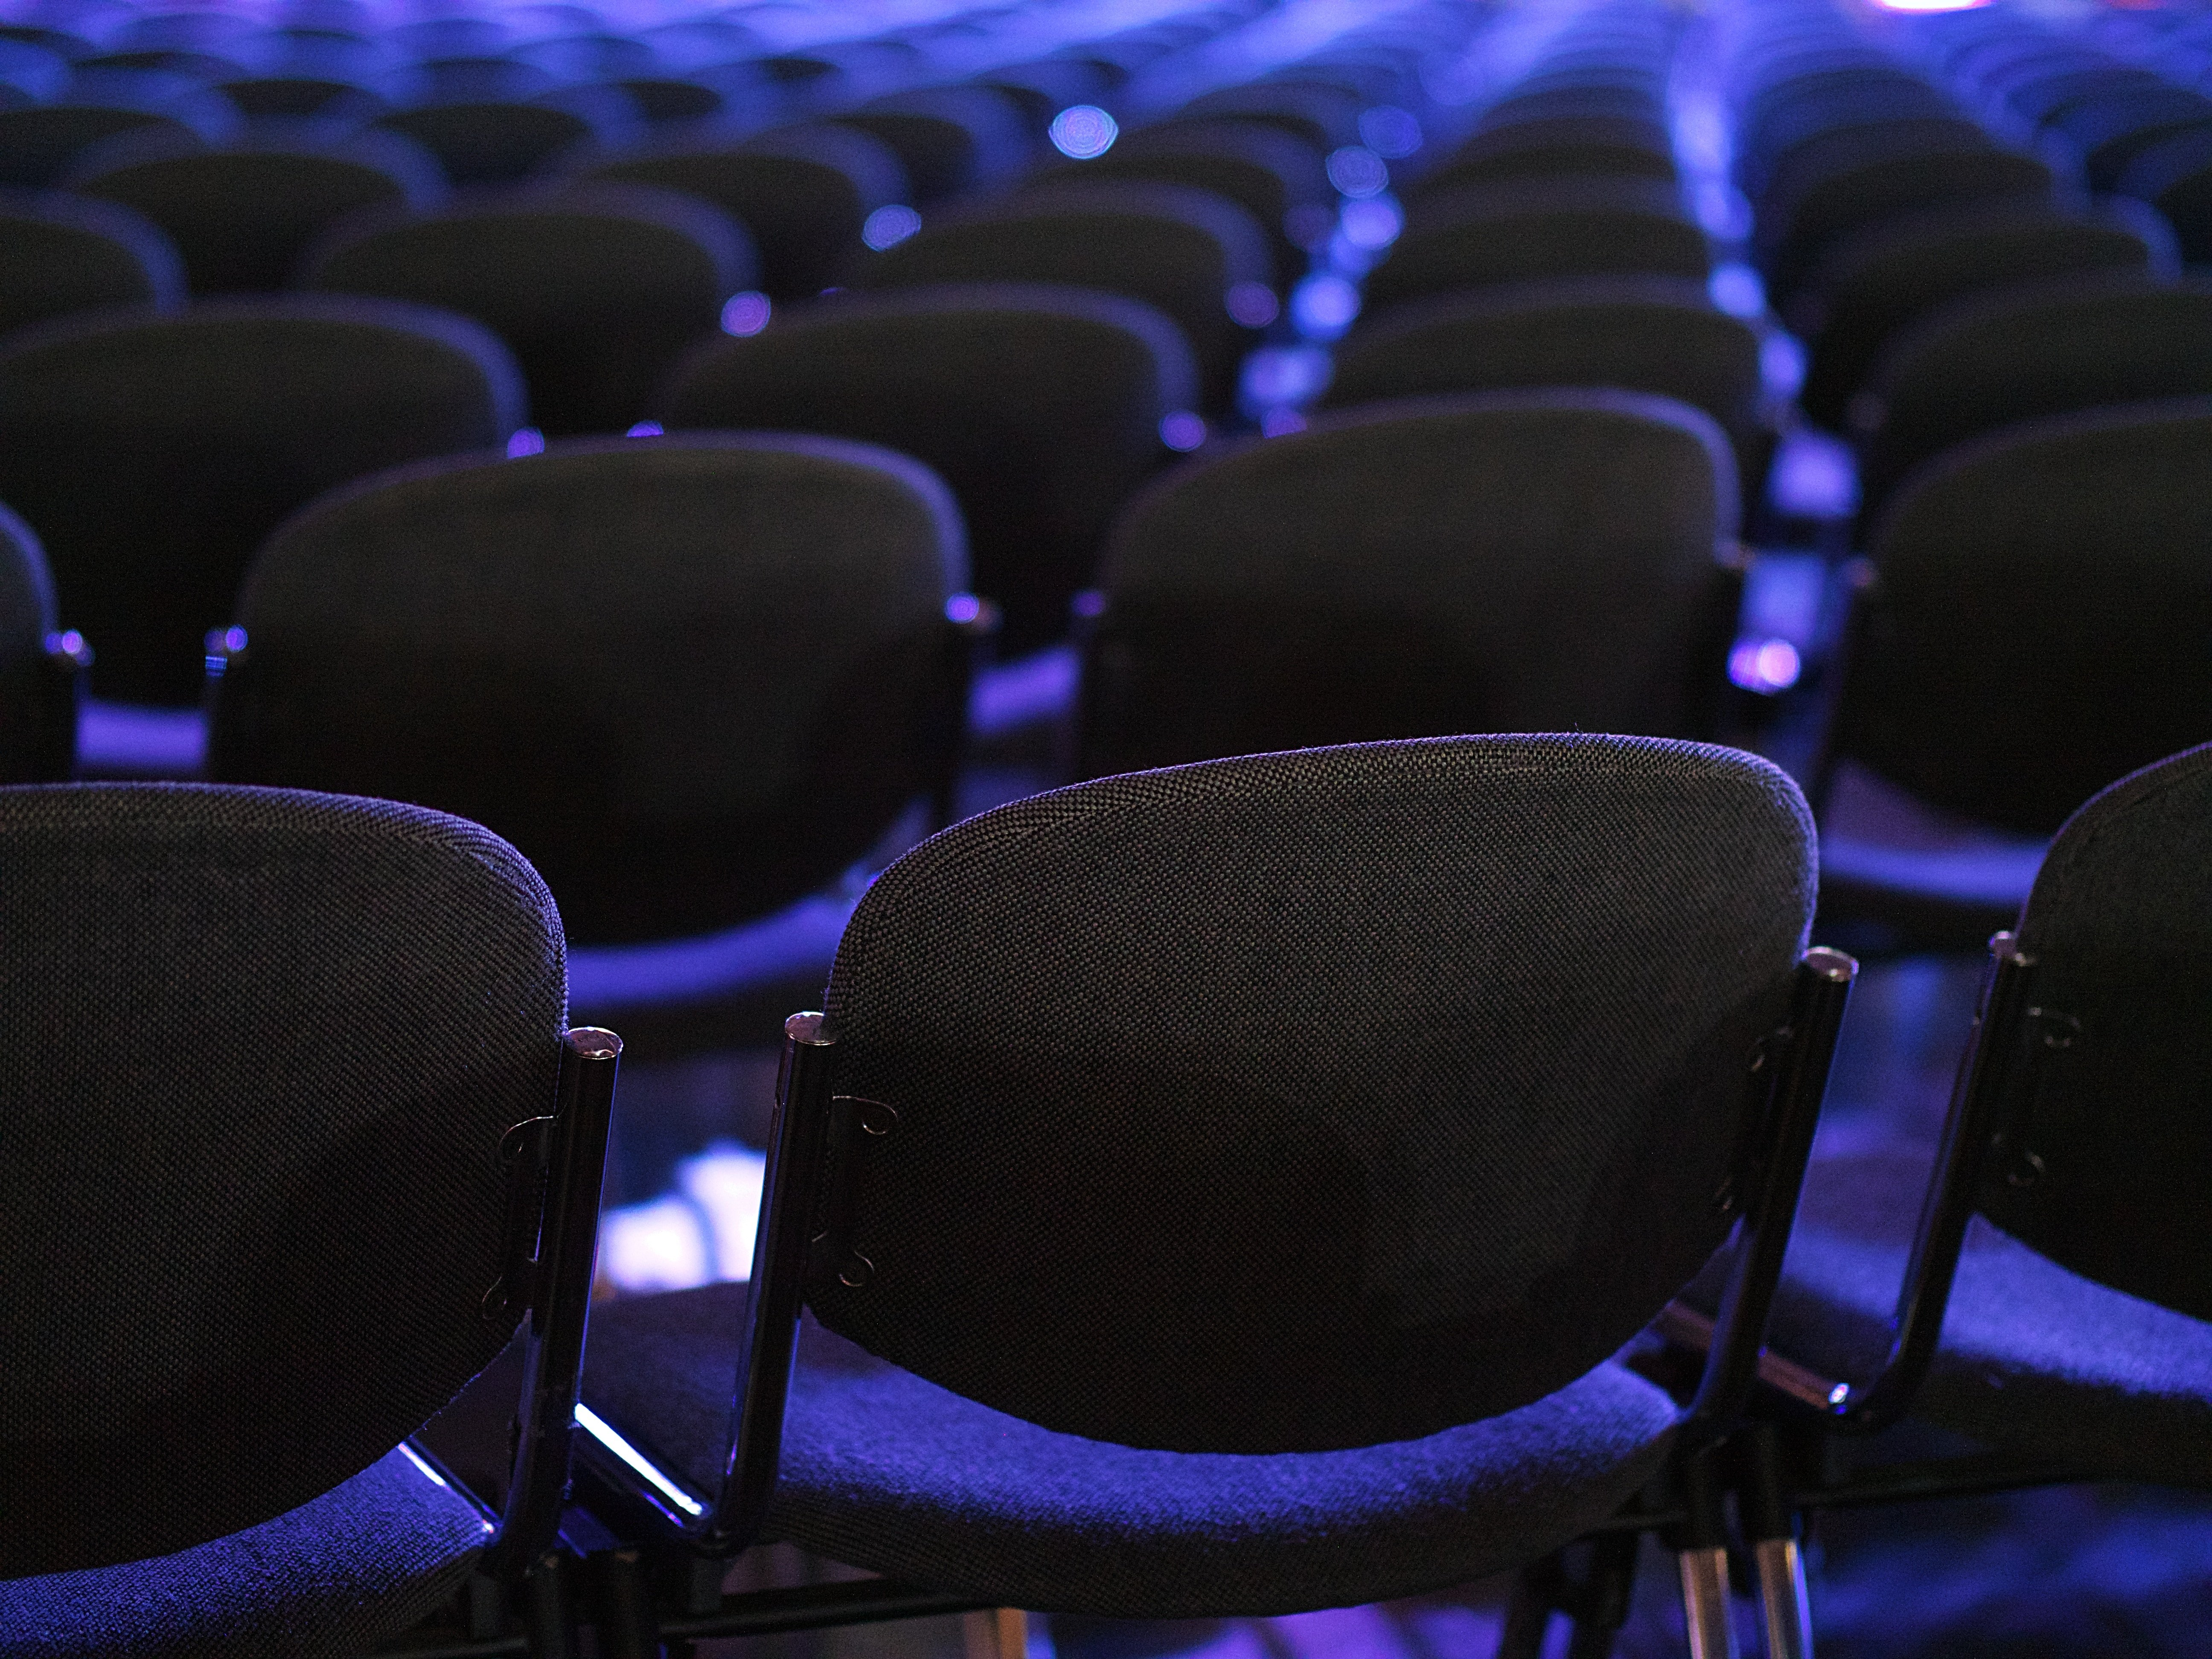 chairs_event